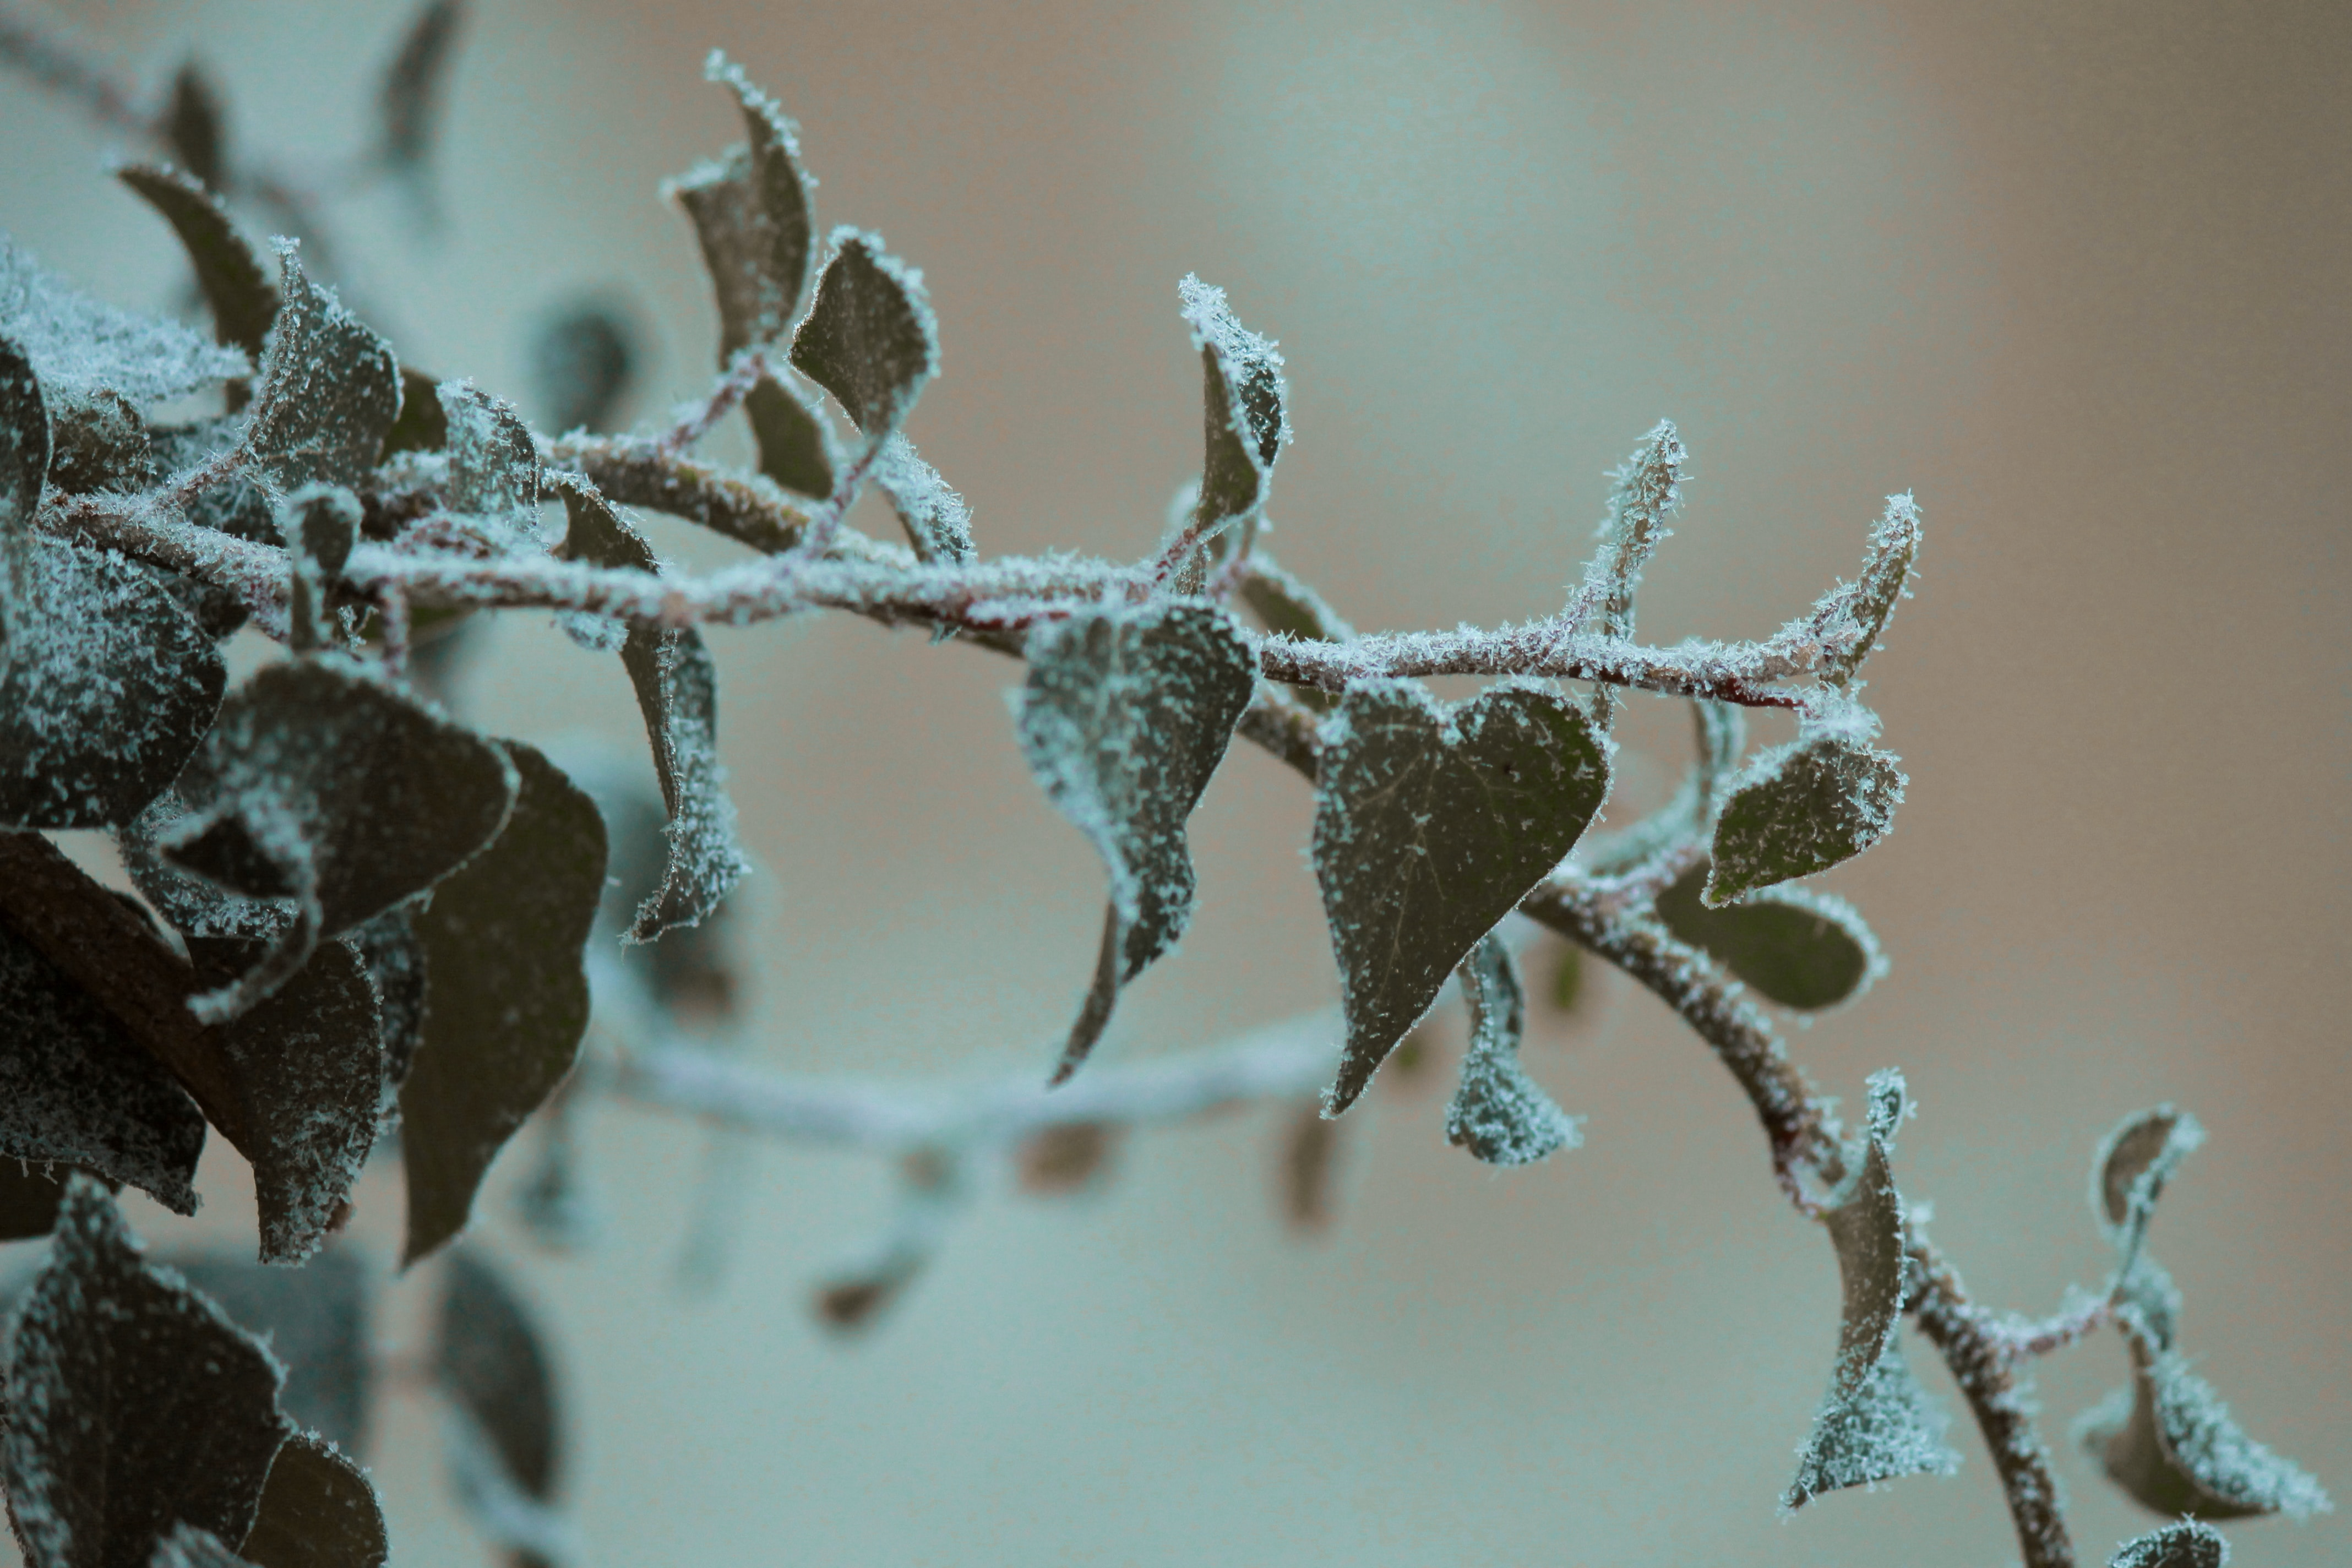 A frosty branch covered in green leaves is seen in close up.